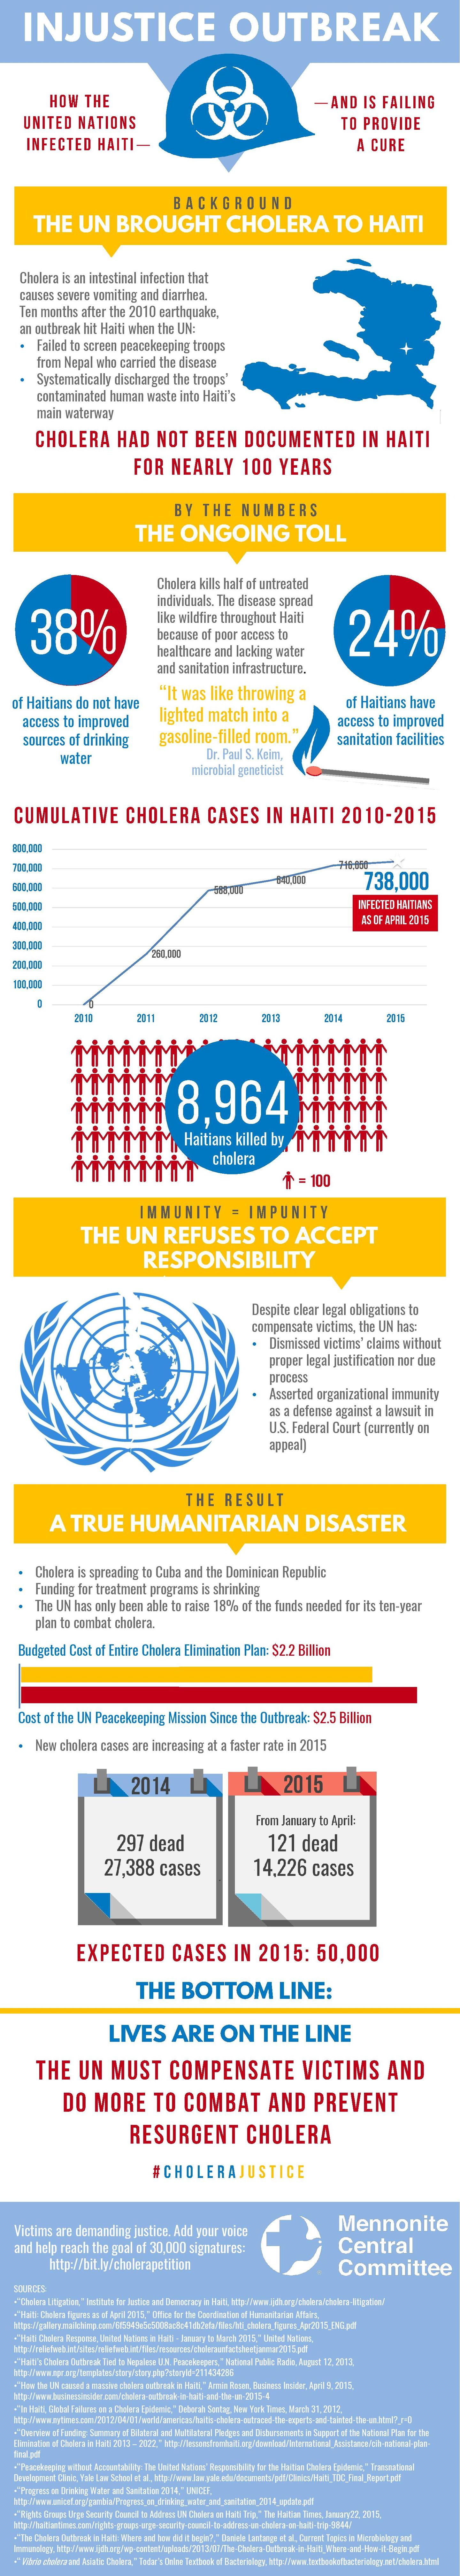 2015-06-04-1433421120-1982398-InjusticeOutbreakInfographic.jpg